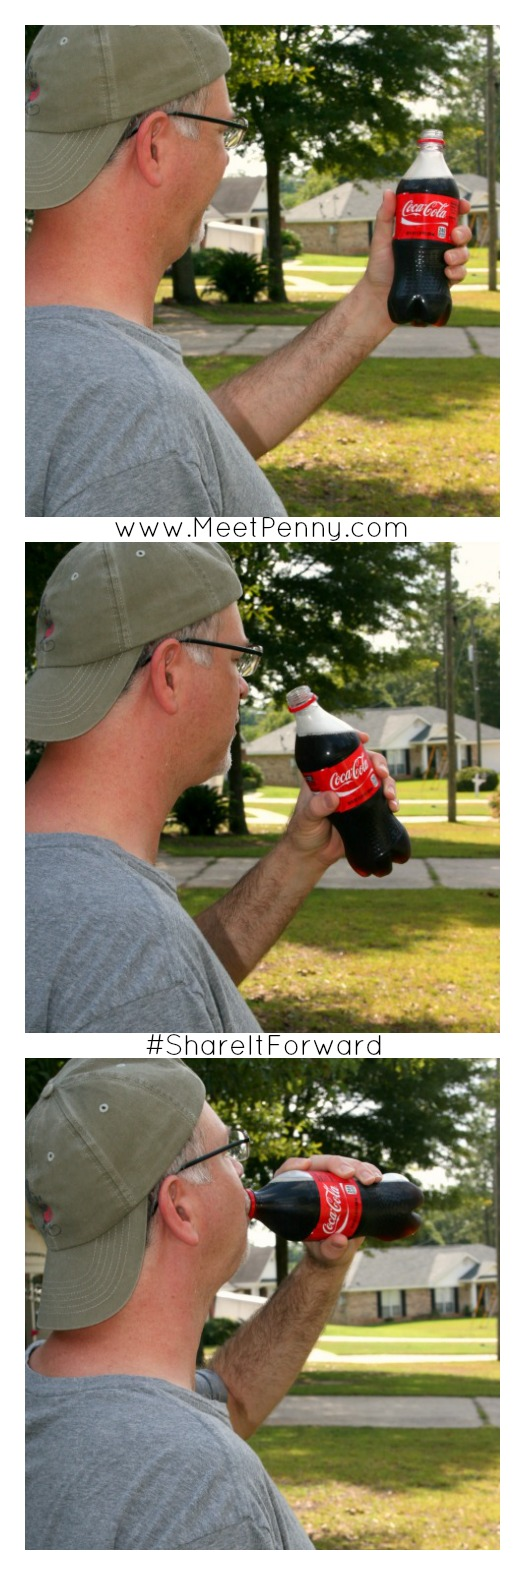 On a hot day, ice down some Coca Colas and pull a wagon around the neighborhood, giving sodas to those working in the yard. Great service idea! #payitforward #shareitforward #shop